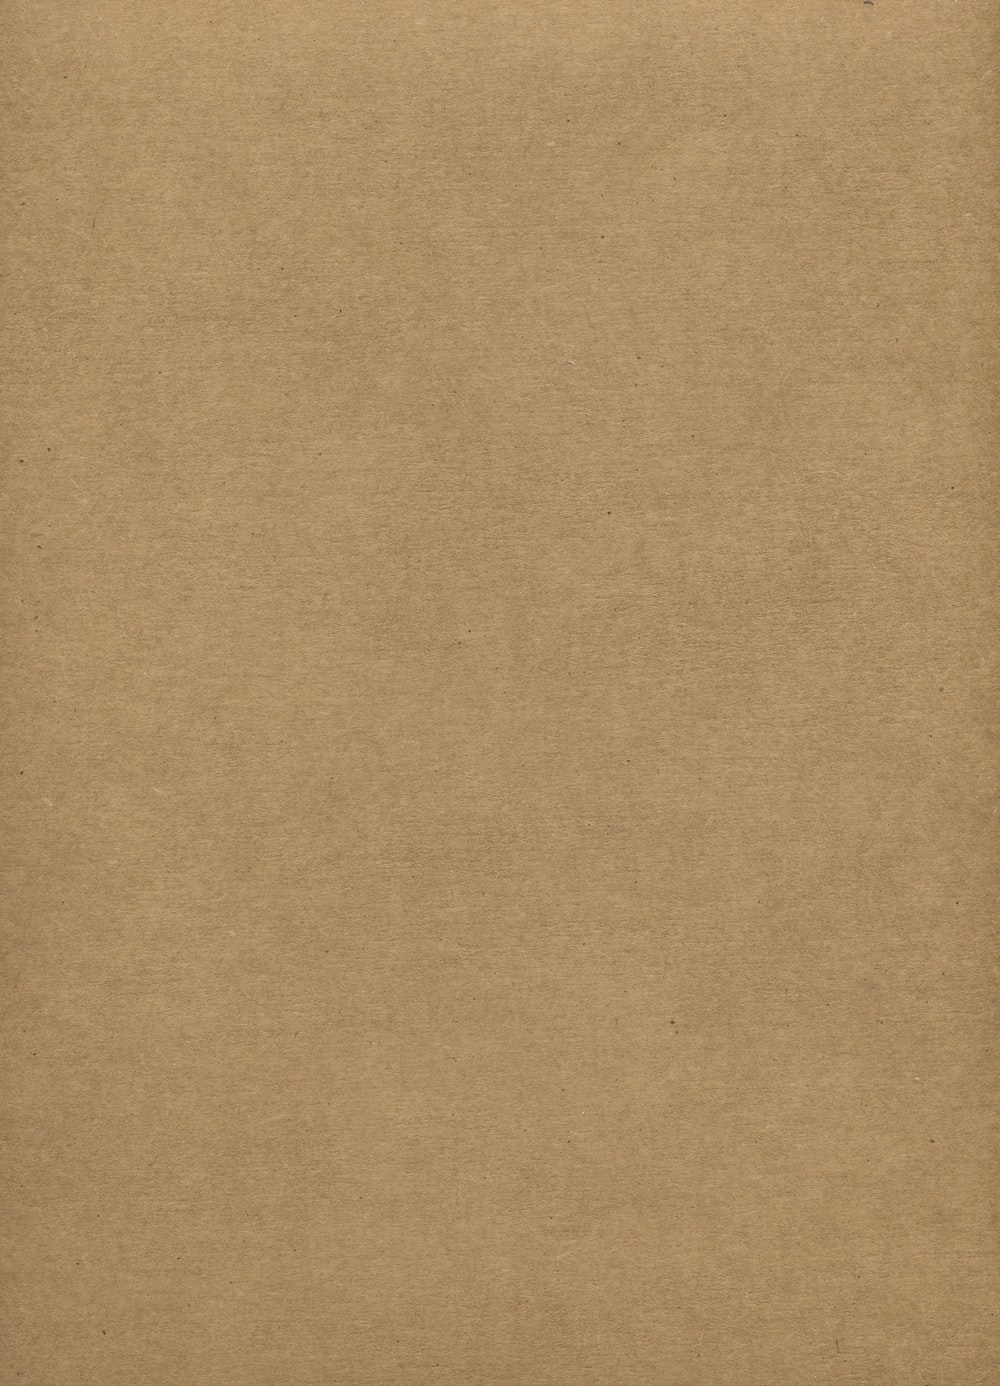 brown textile on brown wooden table